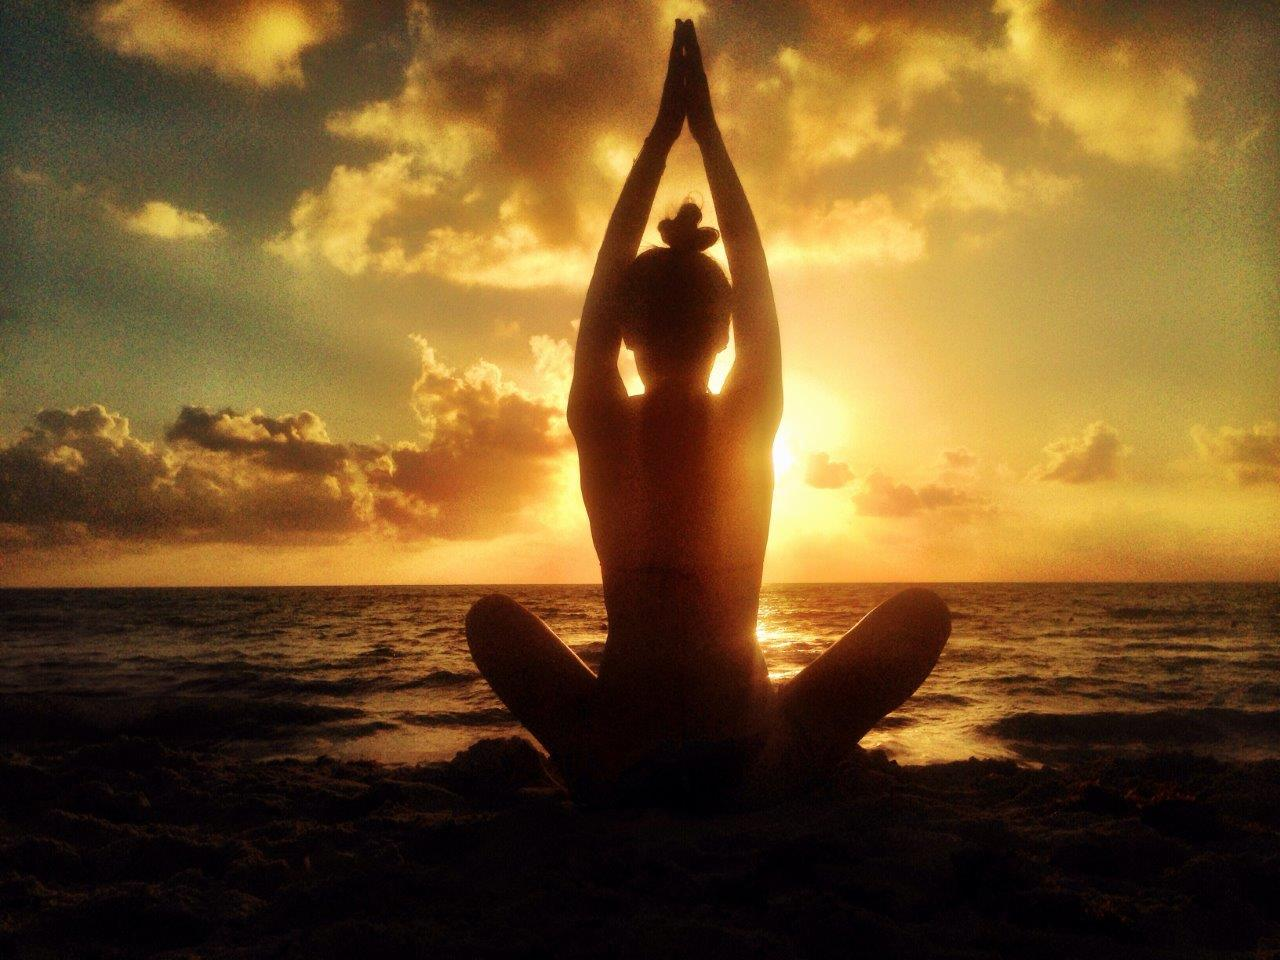 Silhouette of a person doing yoga on the beach at sunrise or sunset